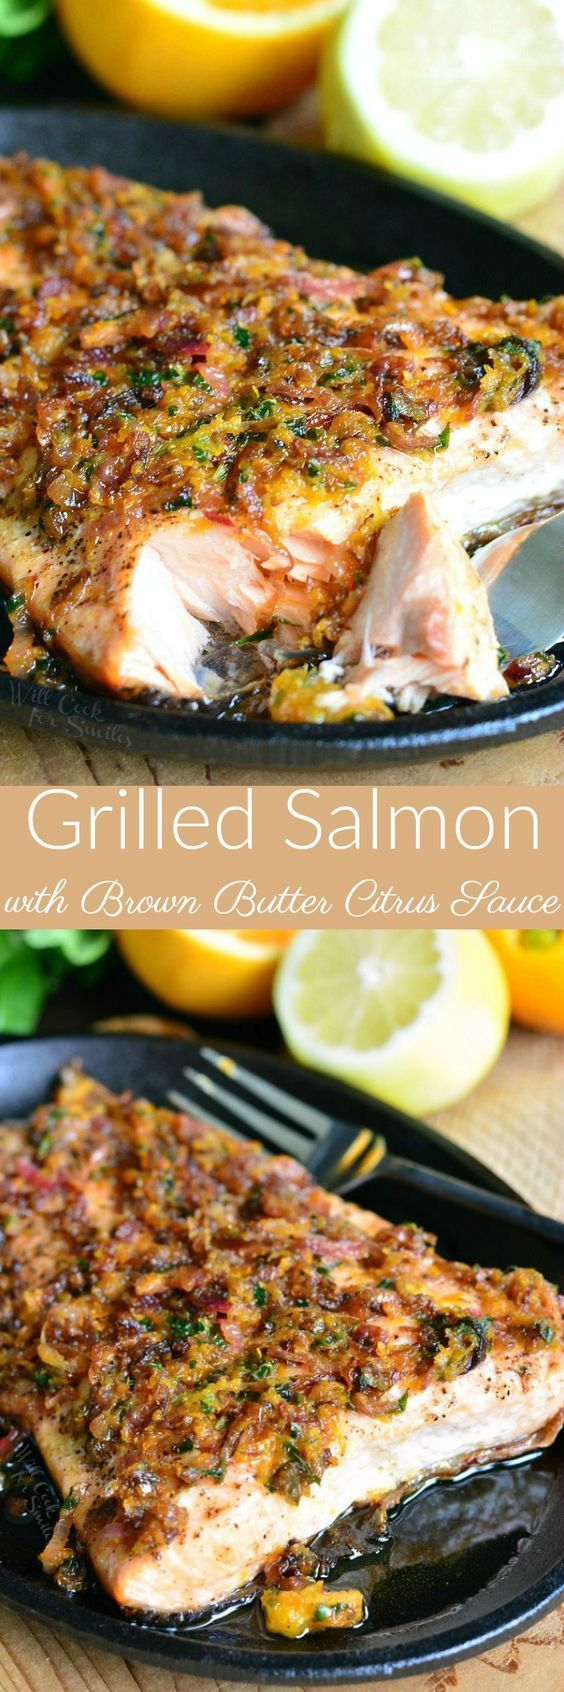 Grilled Salmon with Brown Butter Citrus Sauce ~ super easy and out-of-this-world DELICIOUS grilled salmon topped with a simple, buttery citrus sauce! #seafoodrecipes